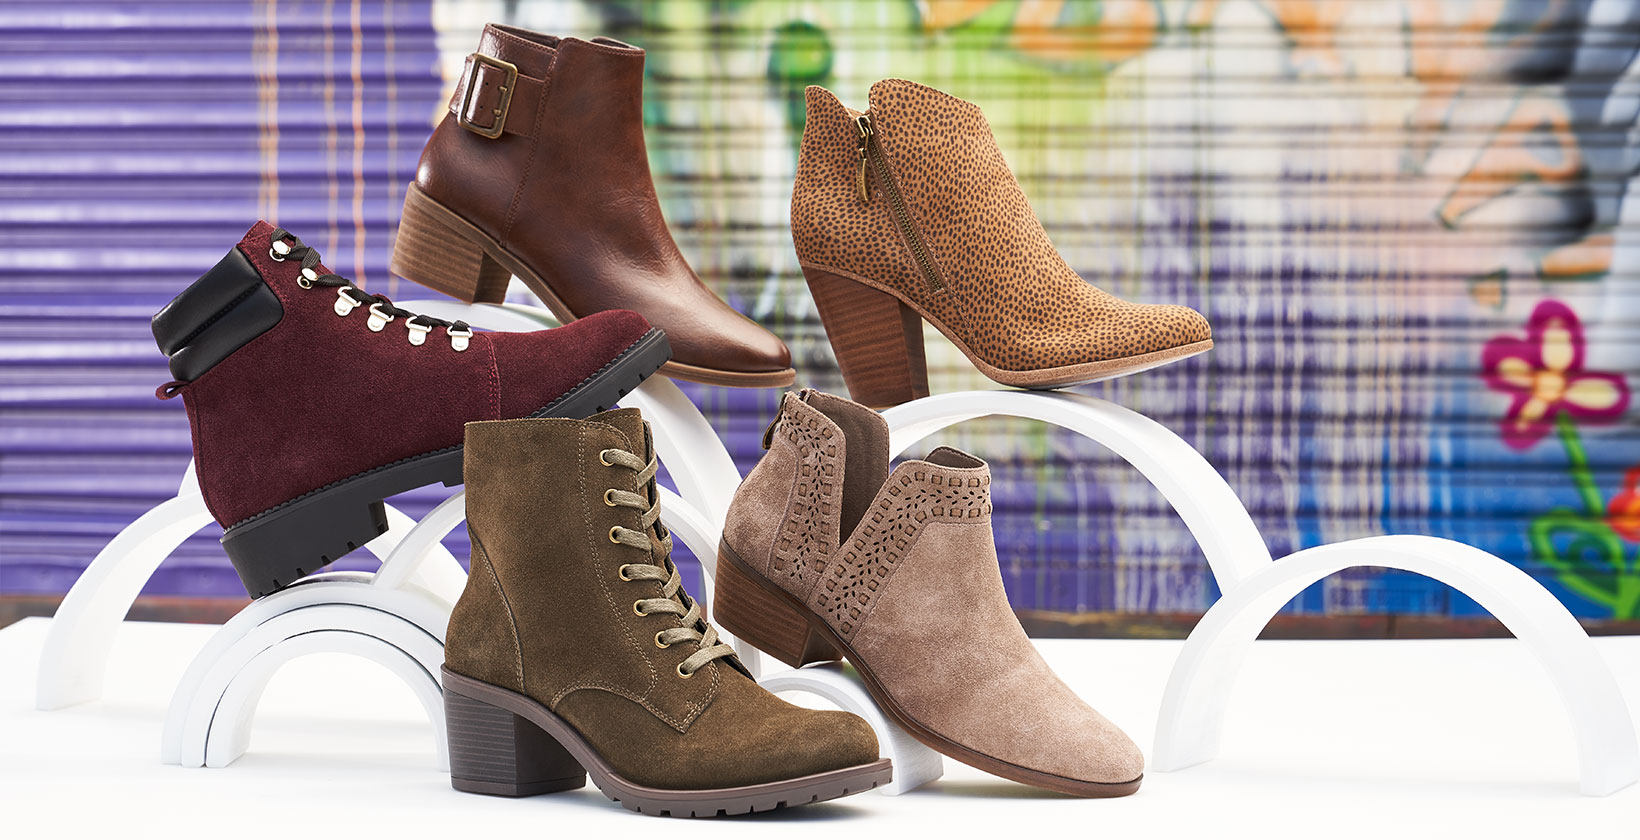 assorted boots and booties